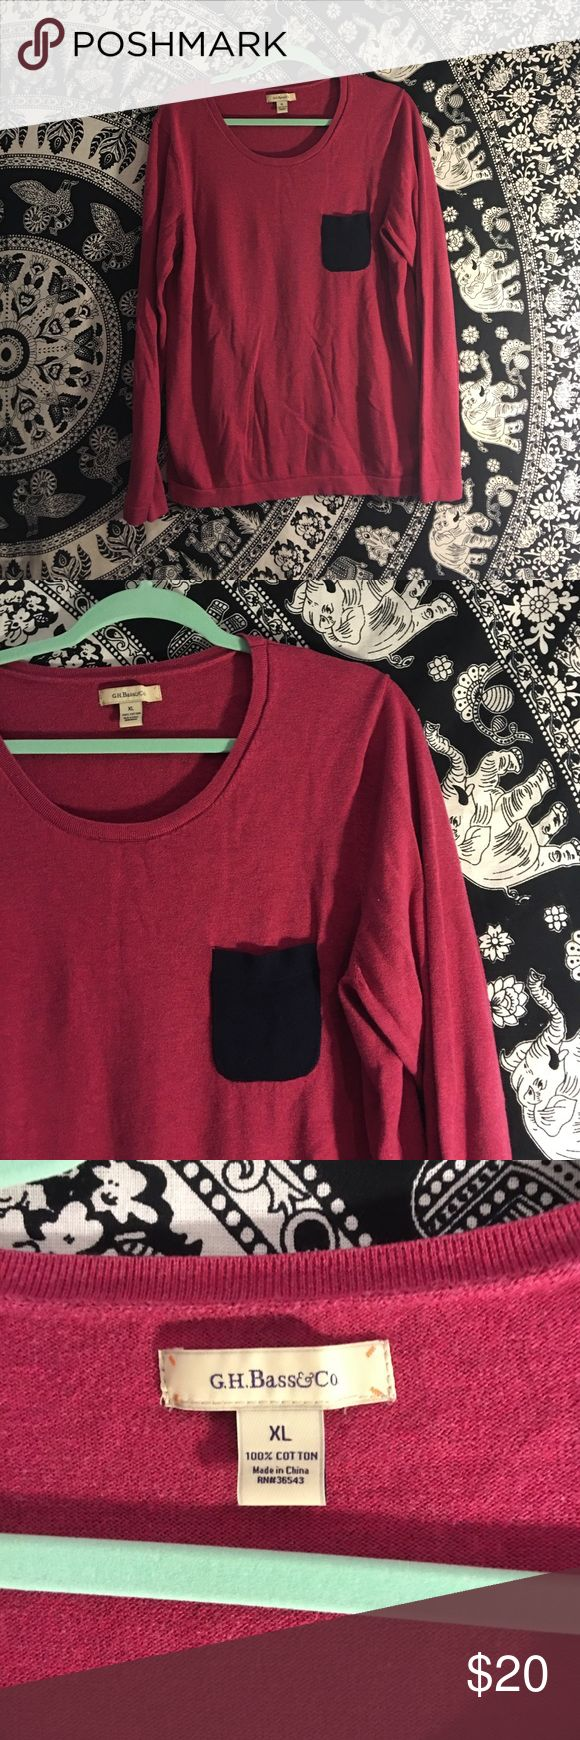 G.H. Bass&Co pocketed sweater Bass&Co cranberry pink scoop neck sweater with navy blue accent pocket. Great condition! Perfect color and thickness for fall layering! Says XL, fits more like a looser large. Bass Sweaters Crew & Scoop Necks